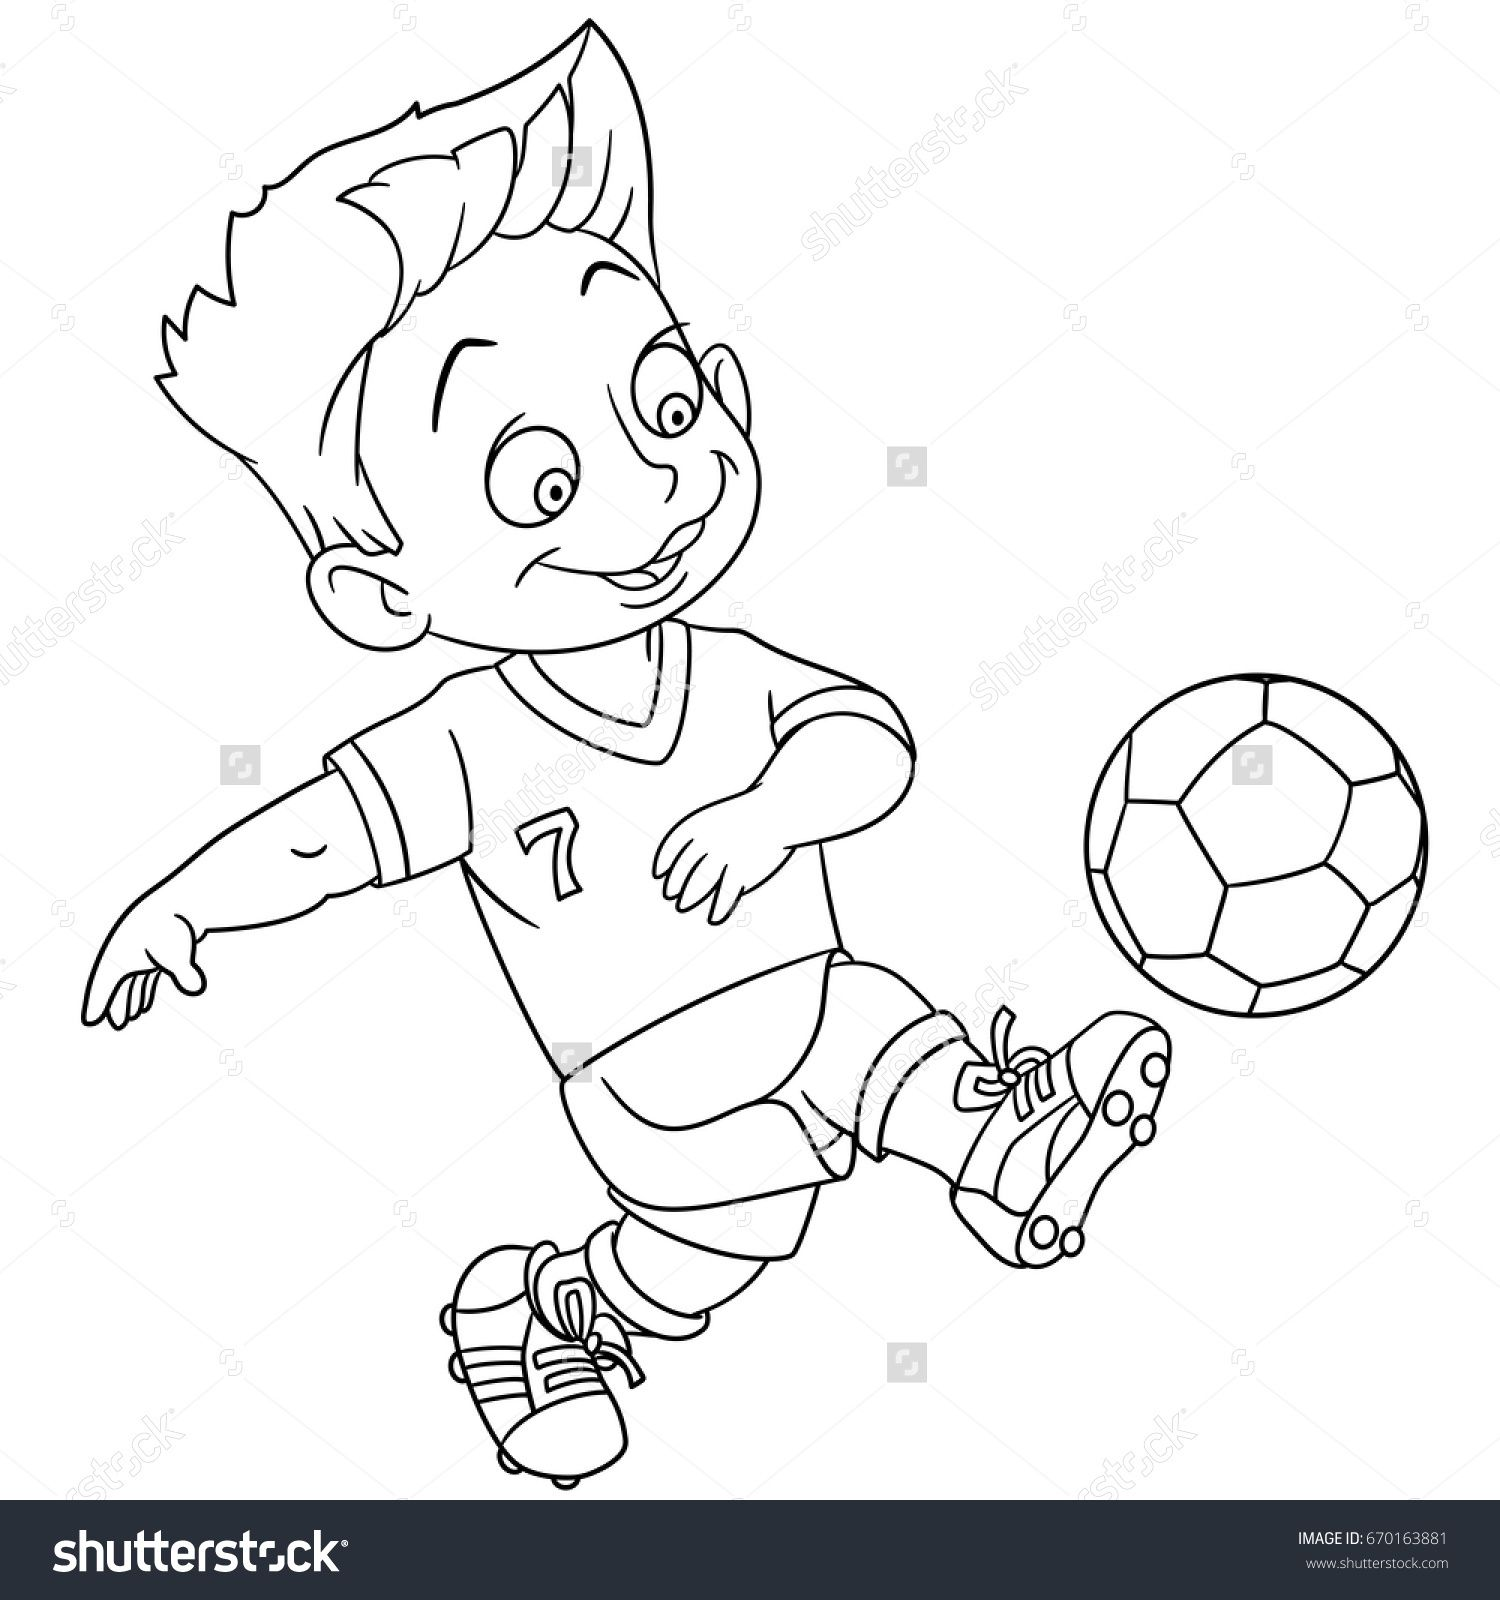 Coloring Page Cartoon Boy Playing Football Vector Illustration For Kids And Children Cartoon Coloring Pages Coloring Pages Cartoon Boy